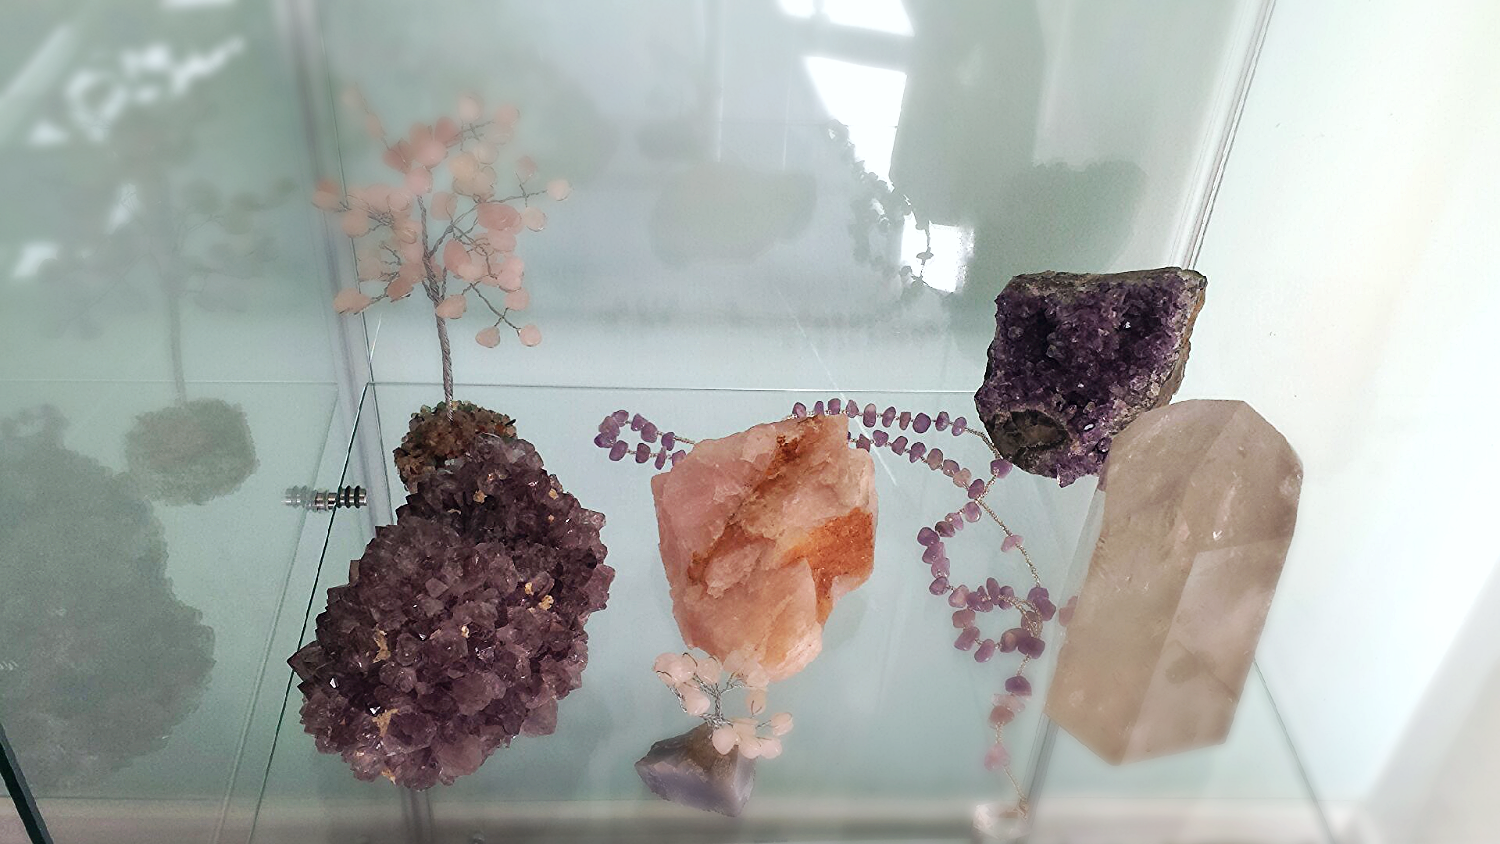 Crystals from Brazil